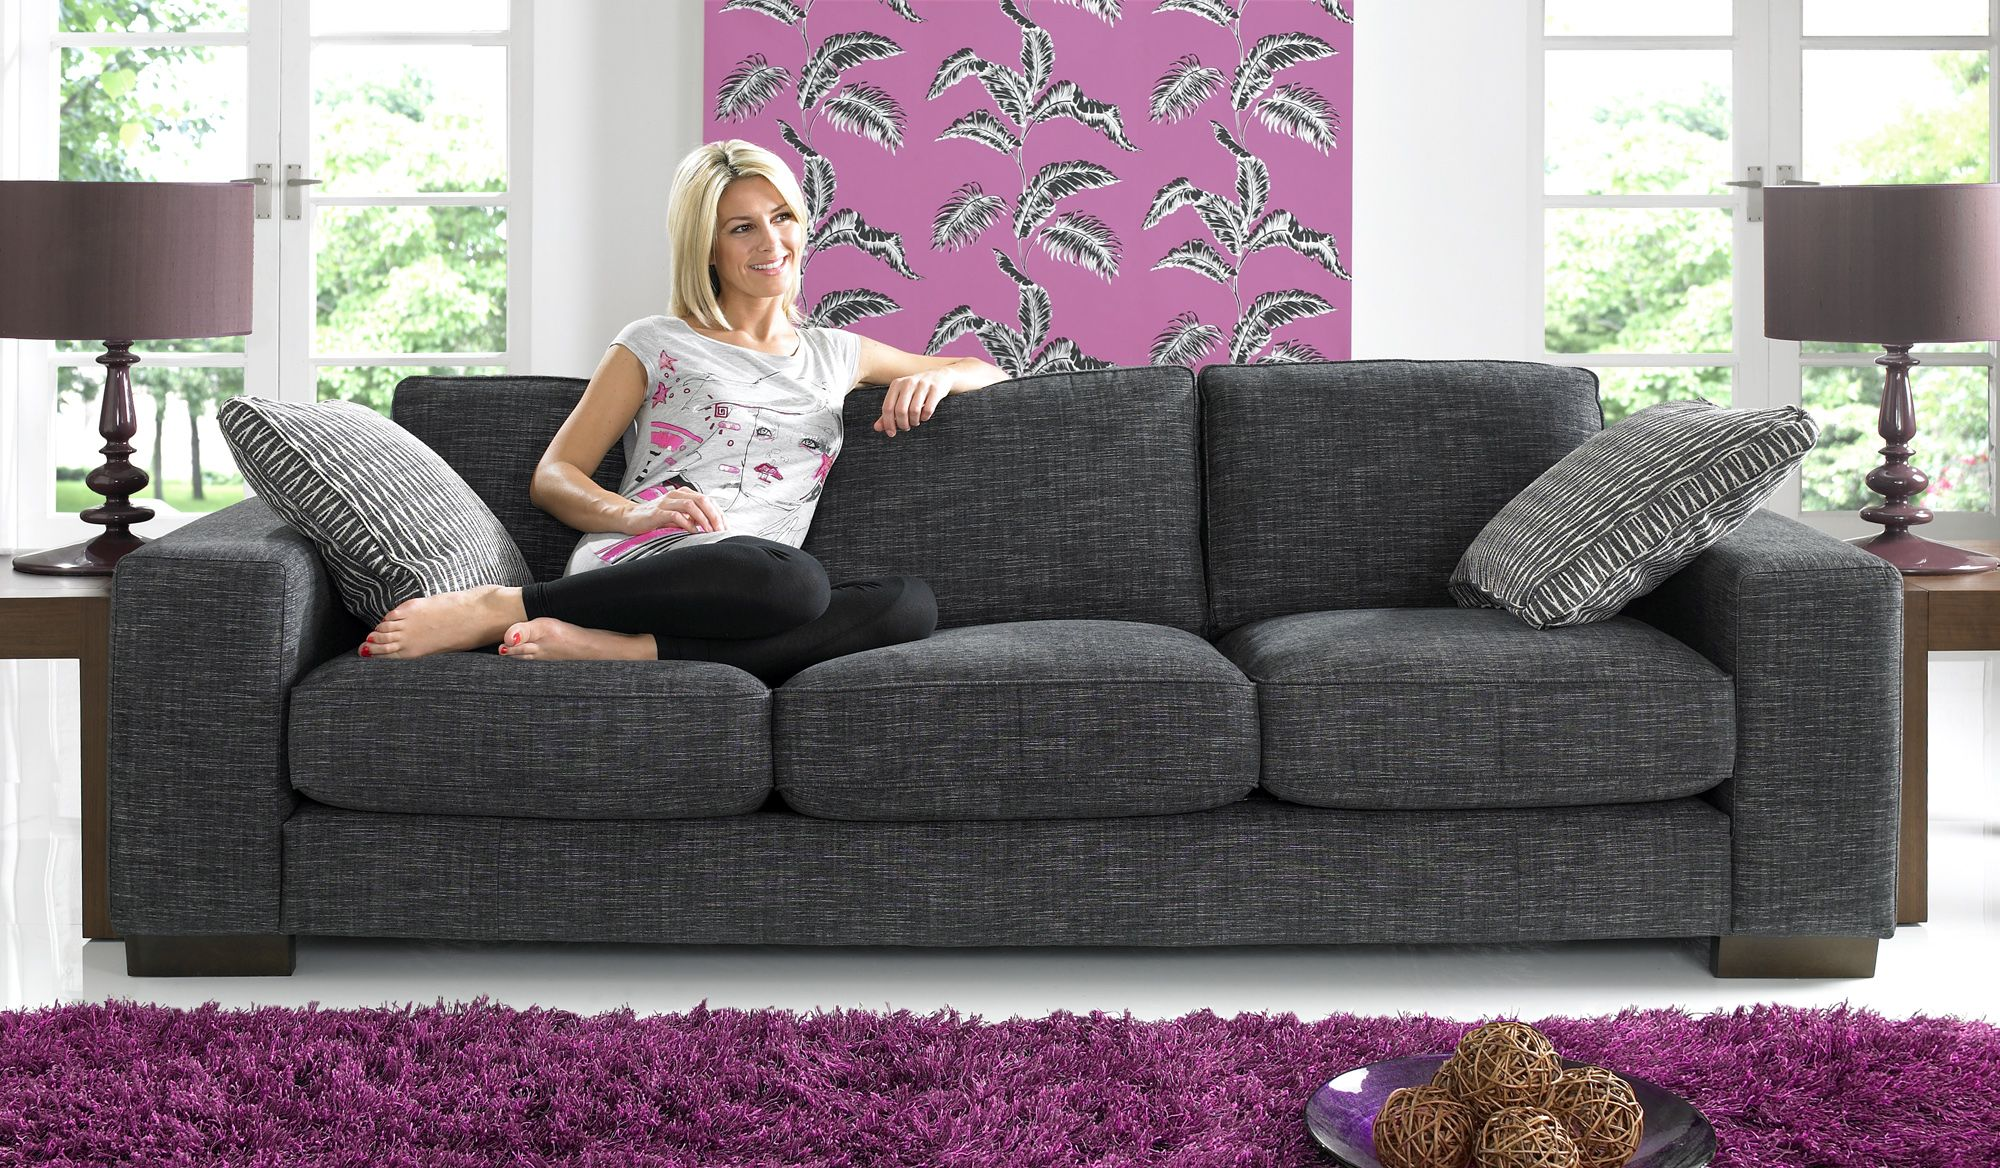 A modern style sofa that fits with todayus living With its